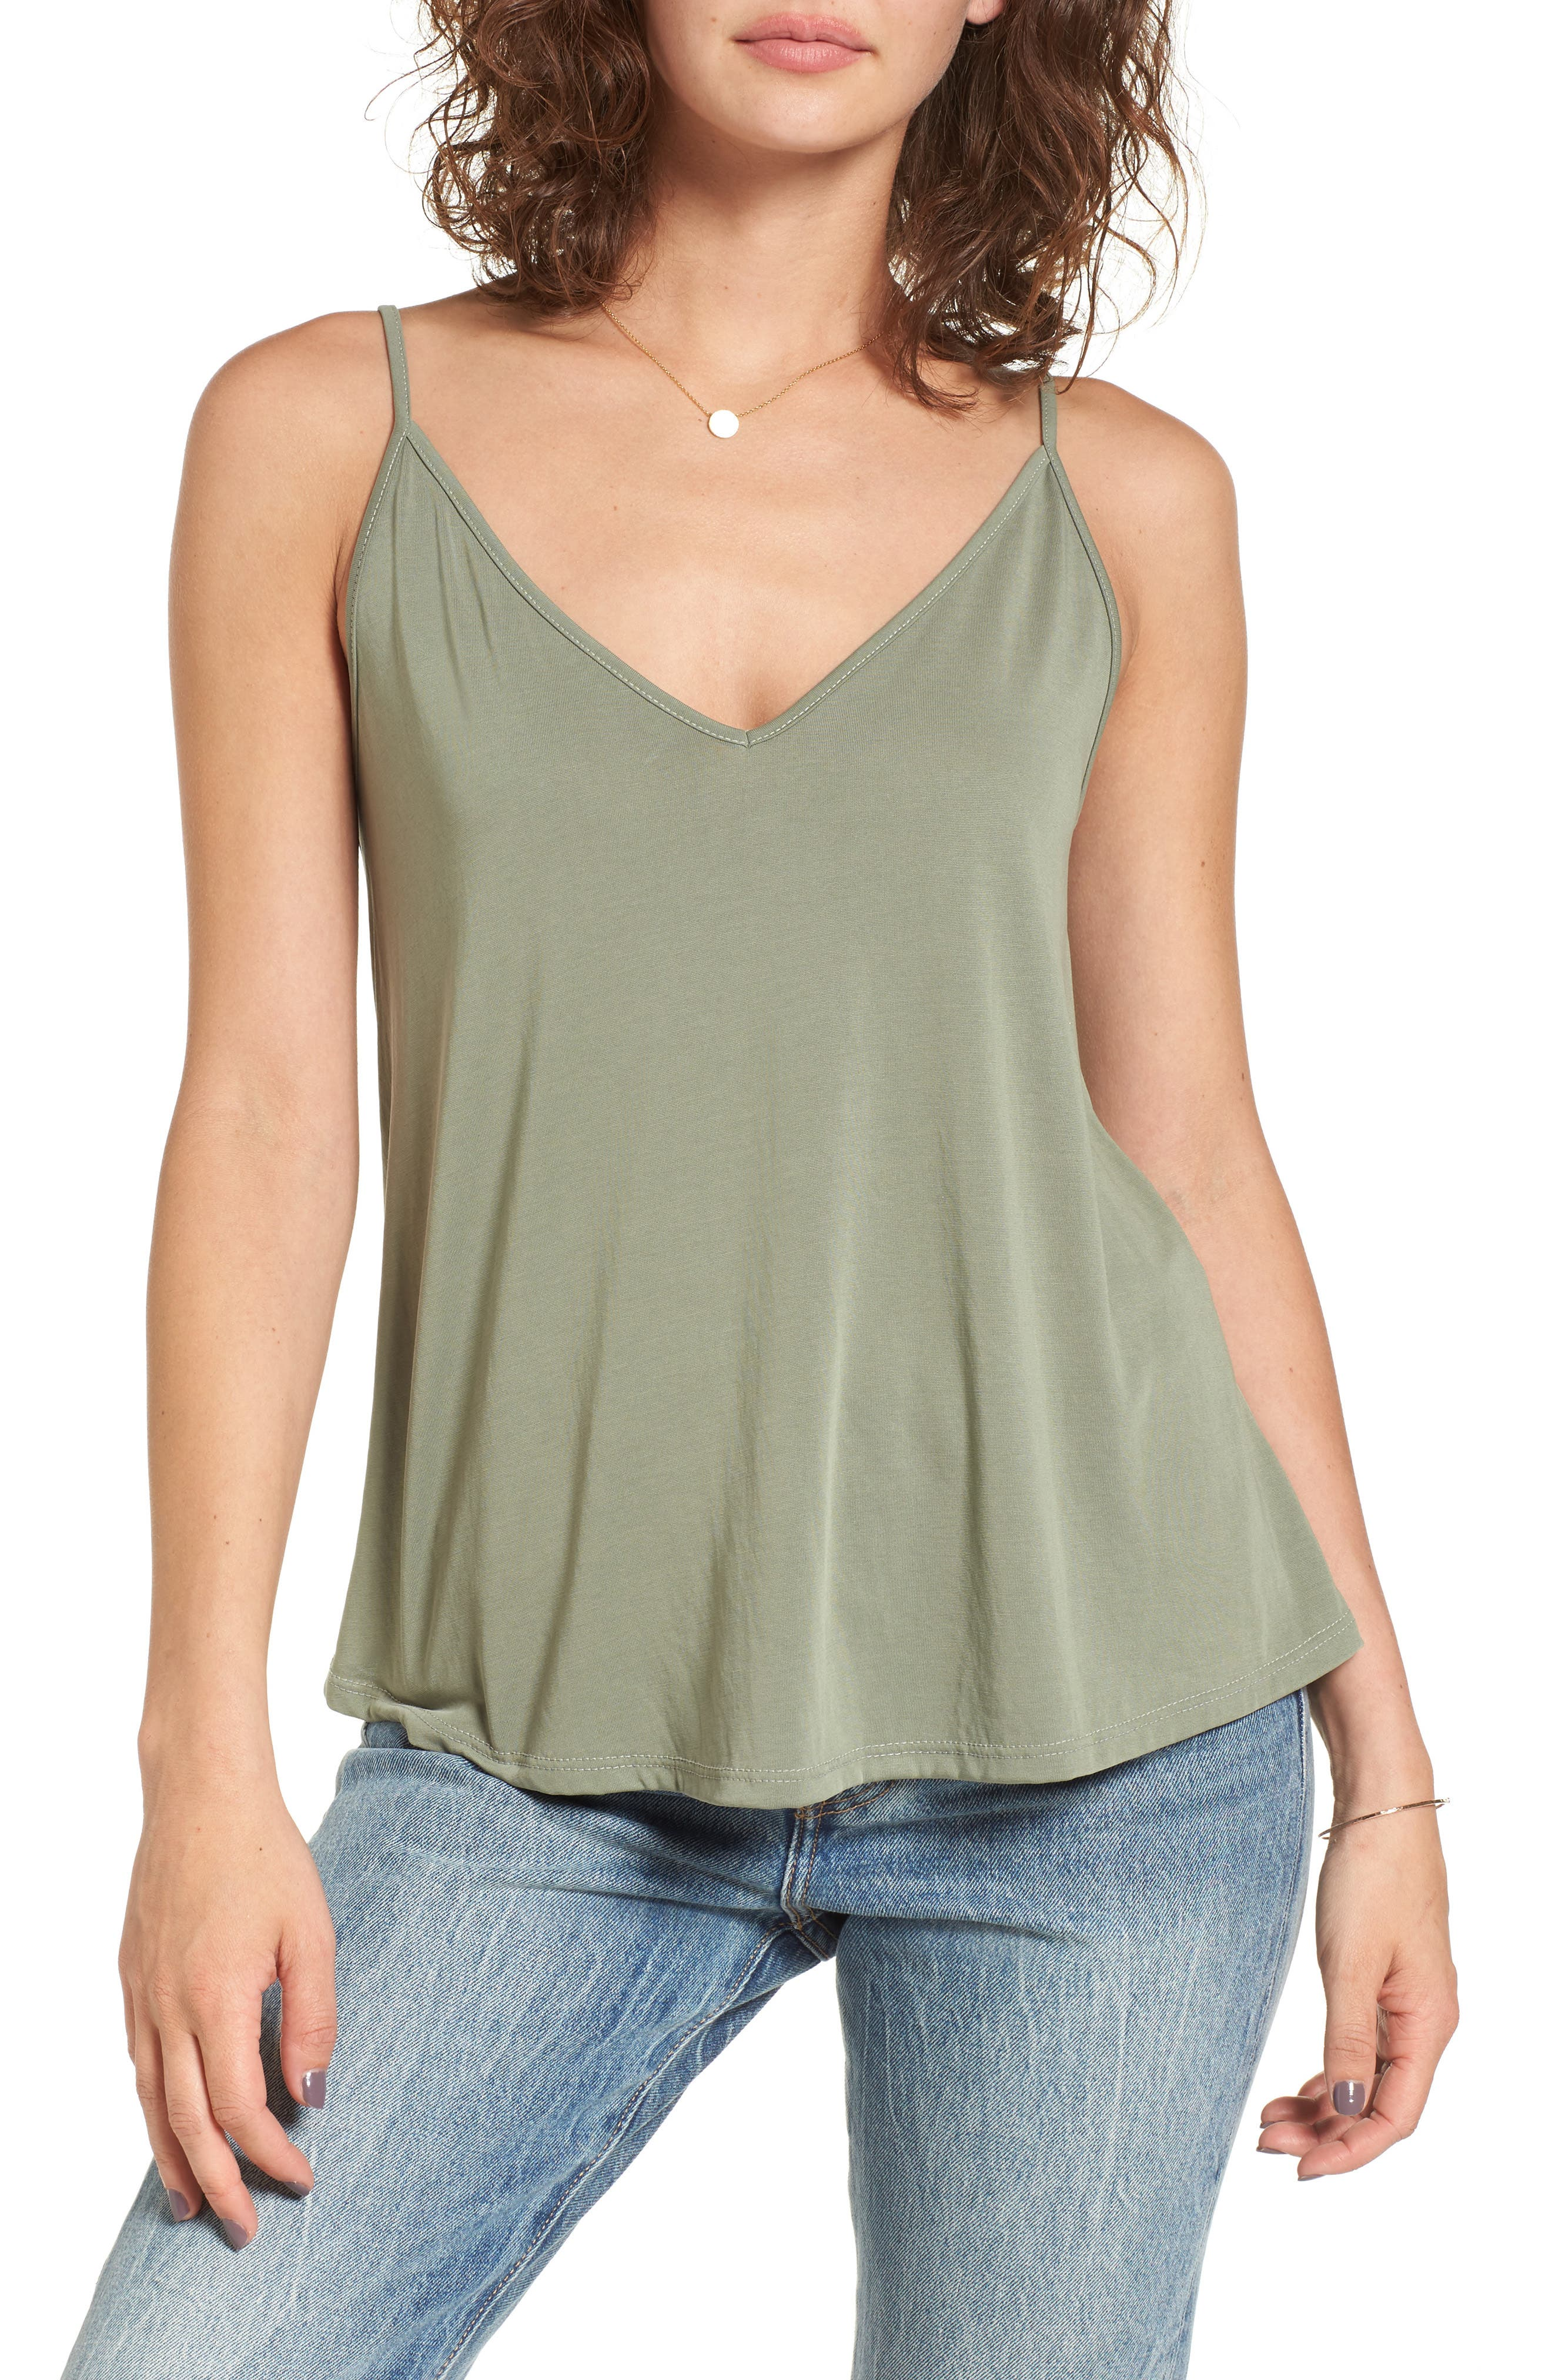 Alternate Image 1 Selected - BP. Double V Swing Camisole